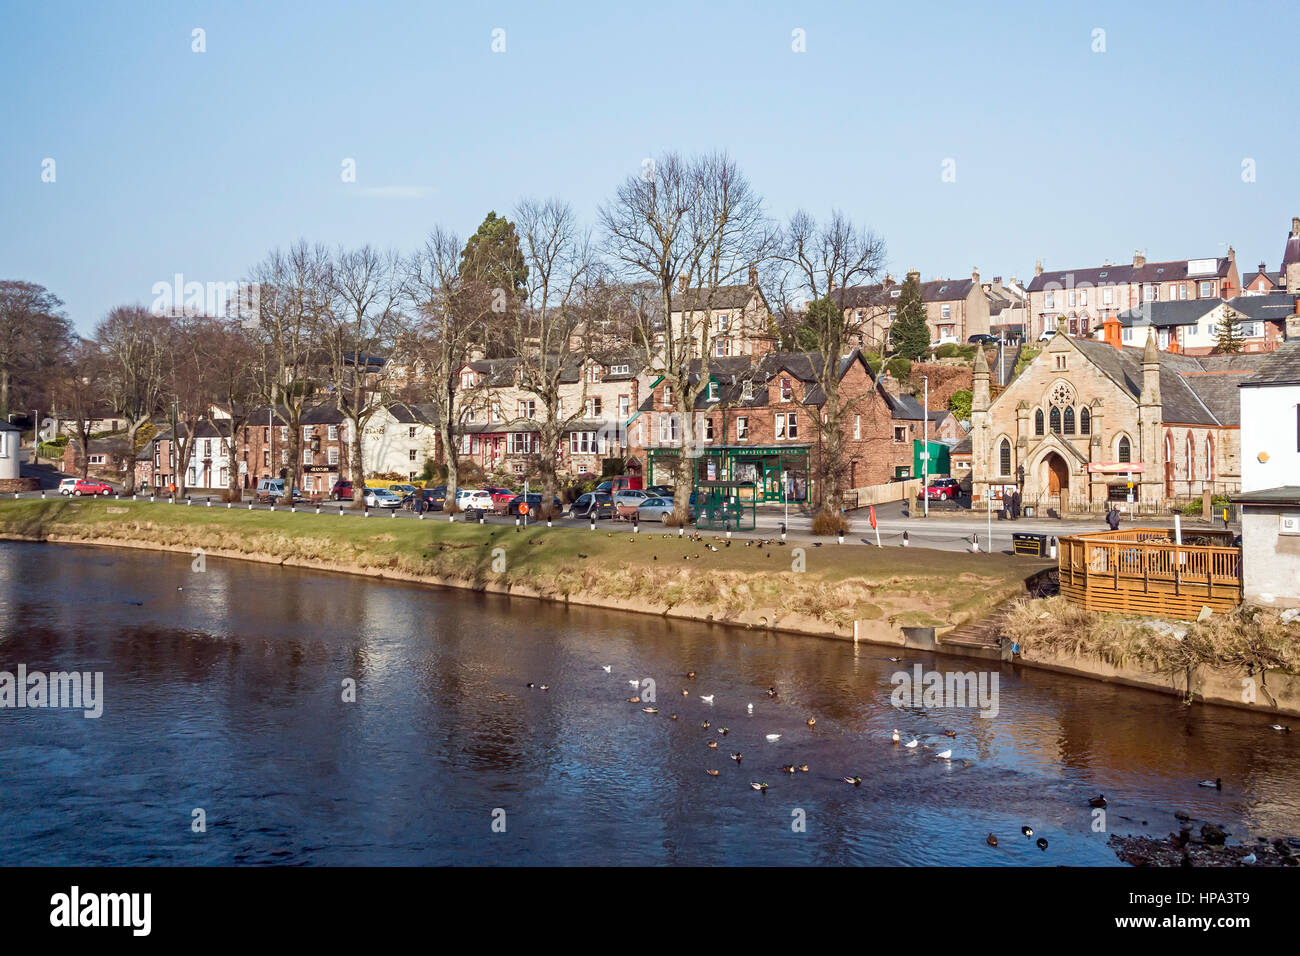 River Eden flowing through Appleby-in-Westmorland in Cumbria England on a sunny winter day - Stock Image